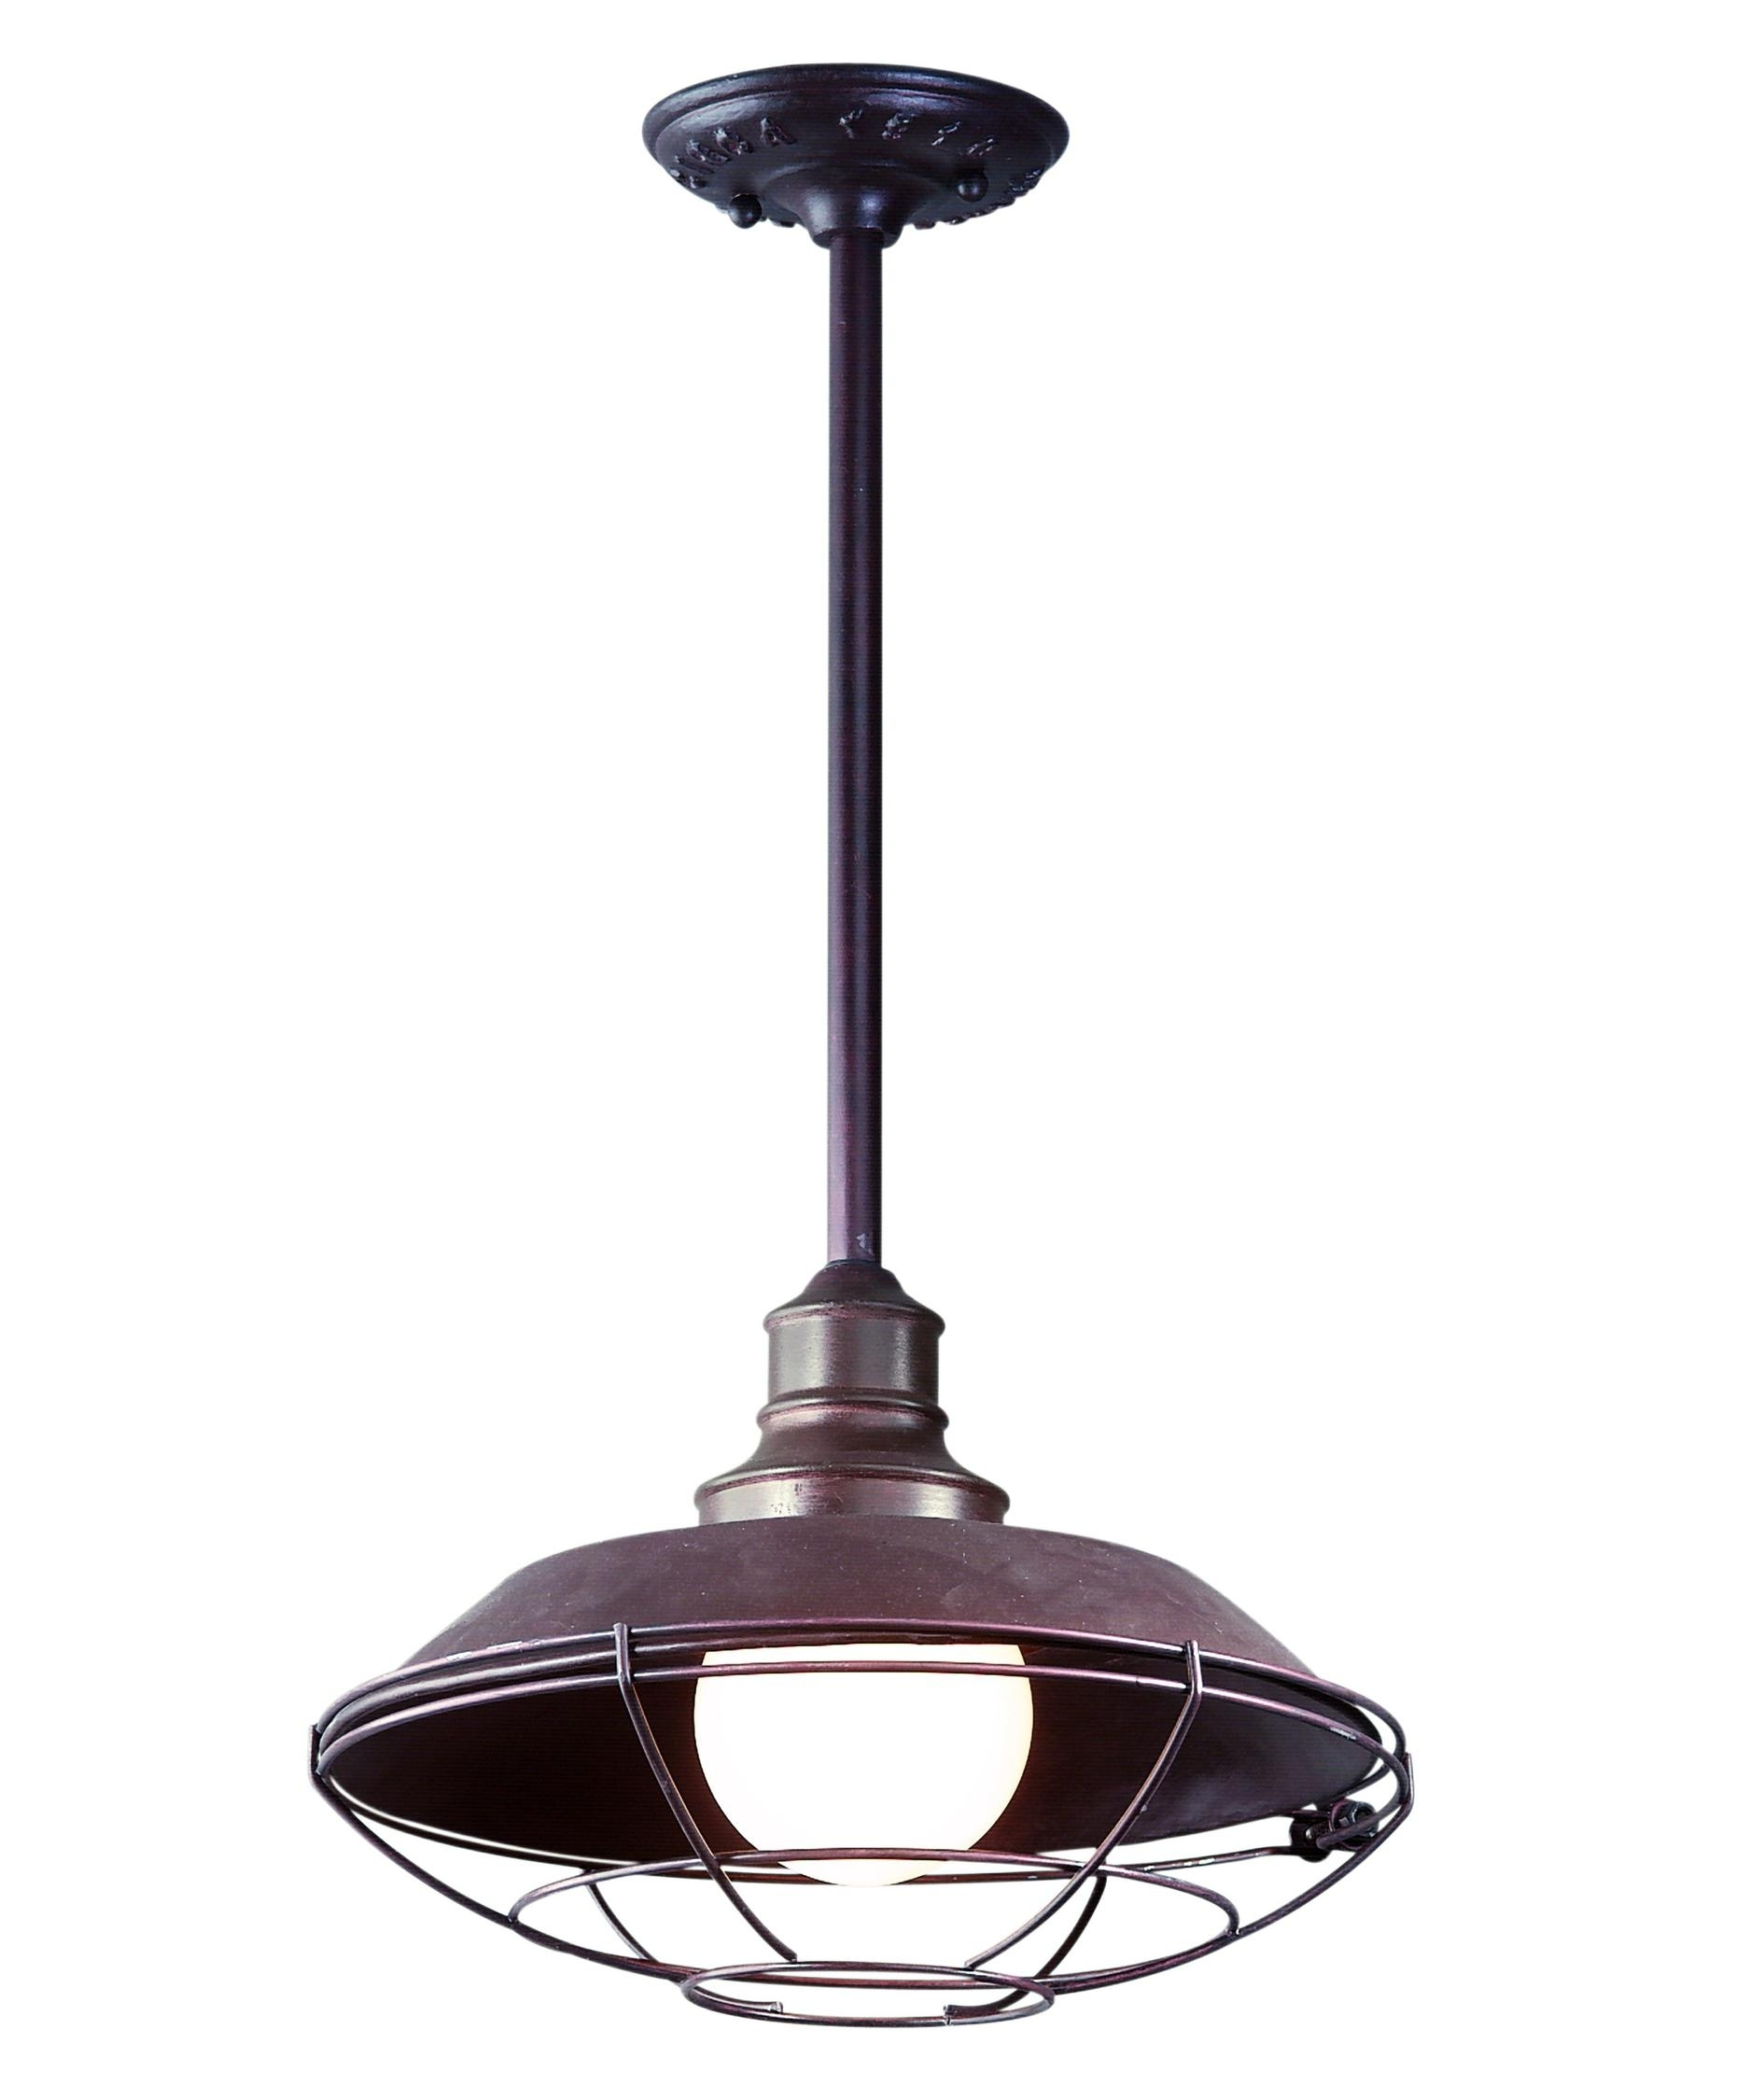 Troy Lighting F9273 Circa 1910 12 Inch Wide 1 Light Outdoor Hanging Intended For Outdoor Hanging Lights From Canada (#14 of 15)